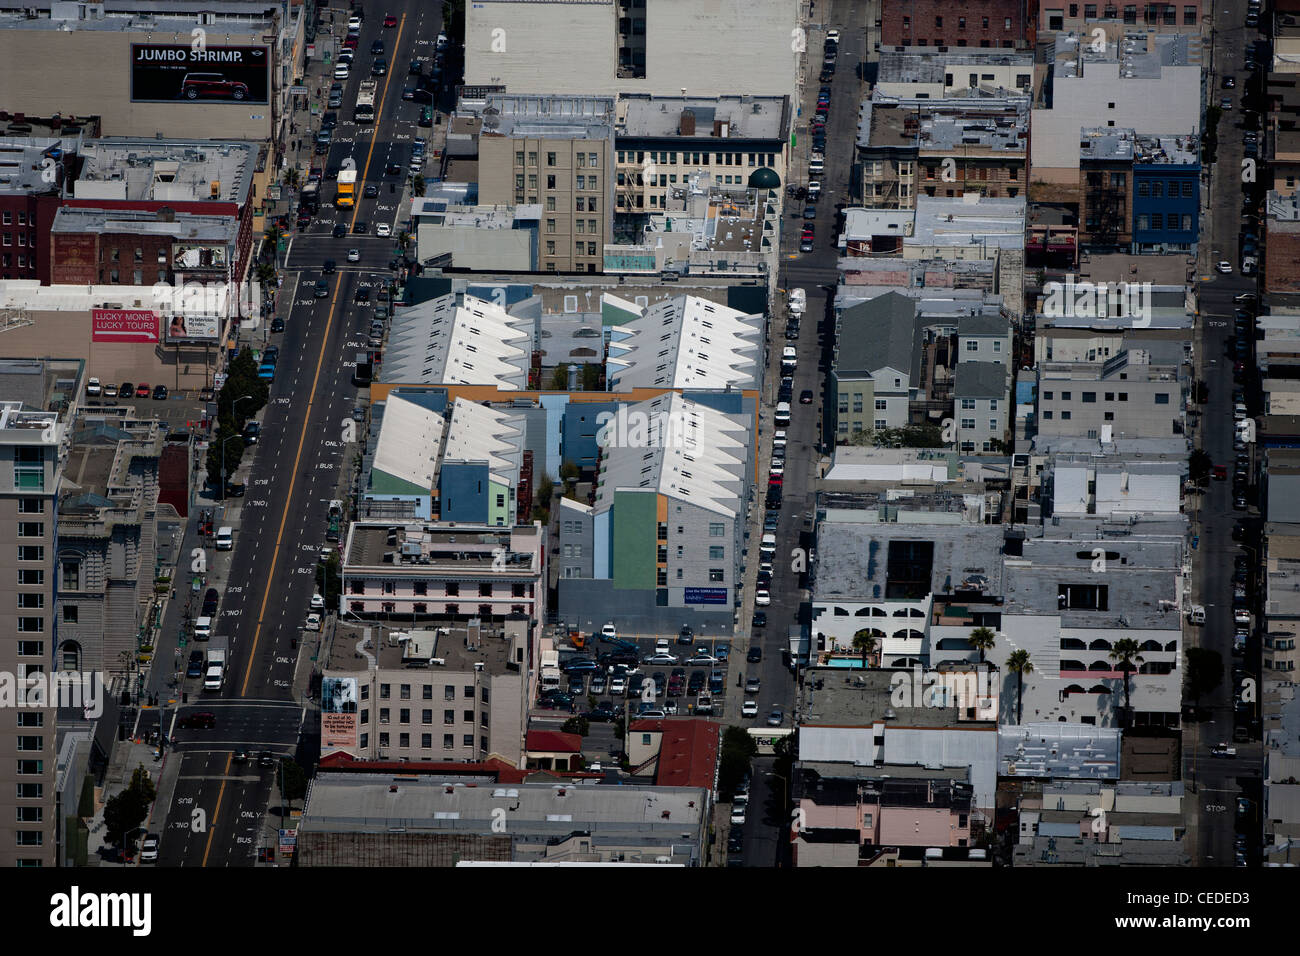 aerial photograph Mission Street South of Market SOMA San Francisco, California - Stock Image